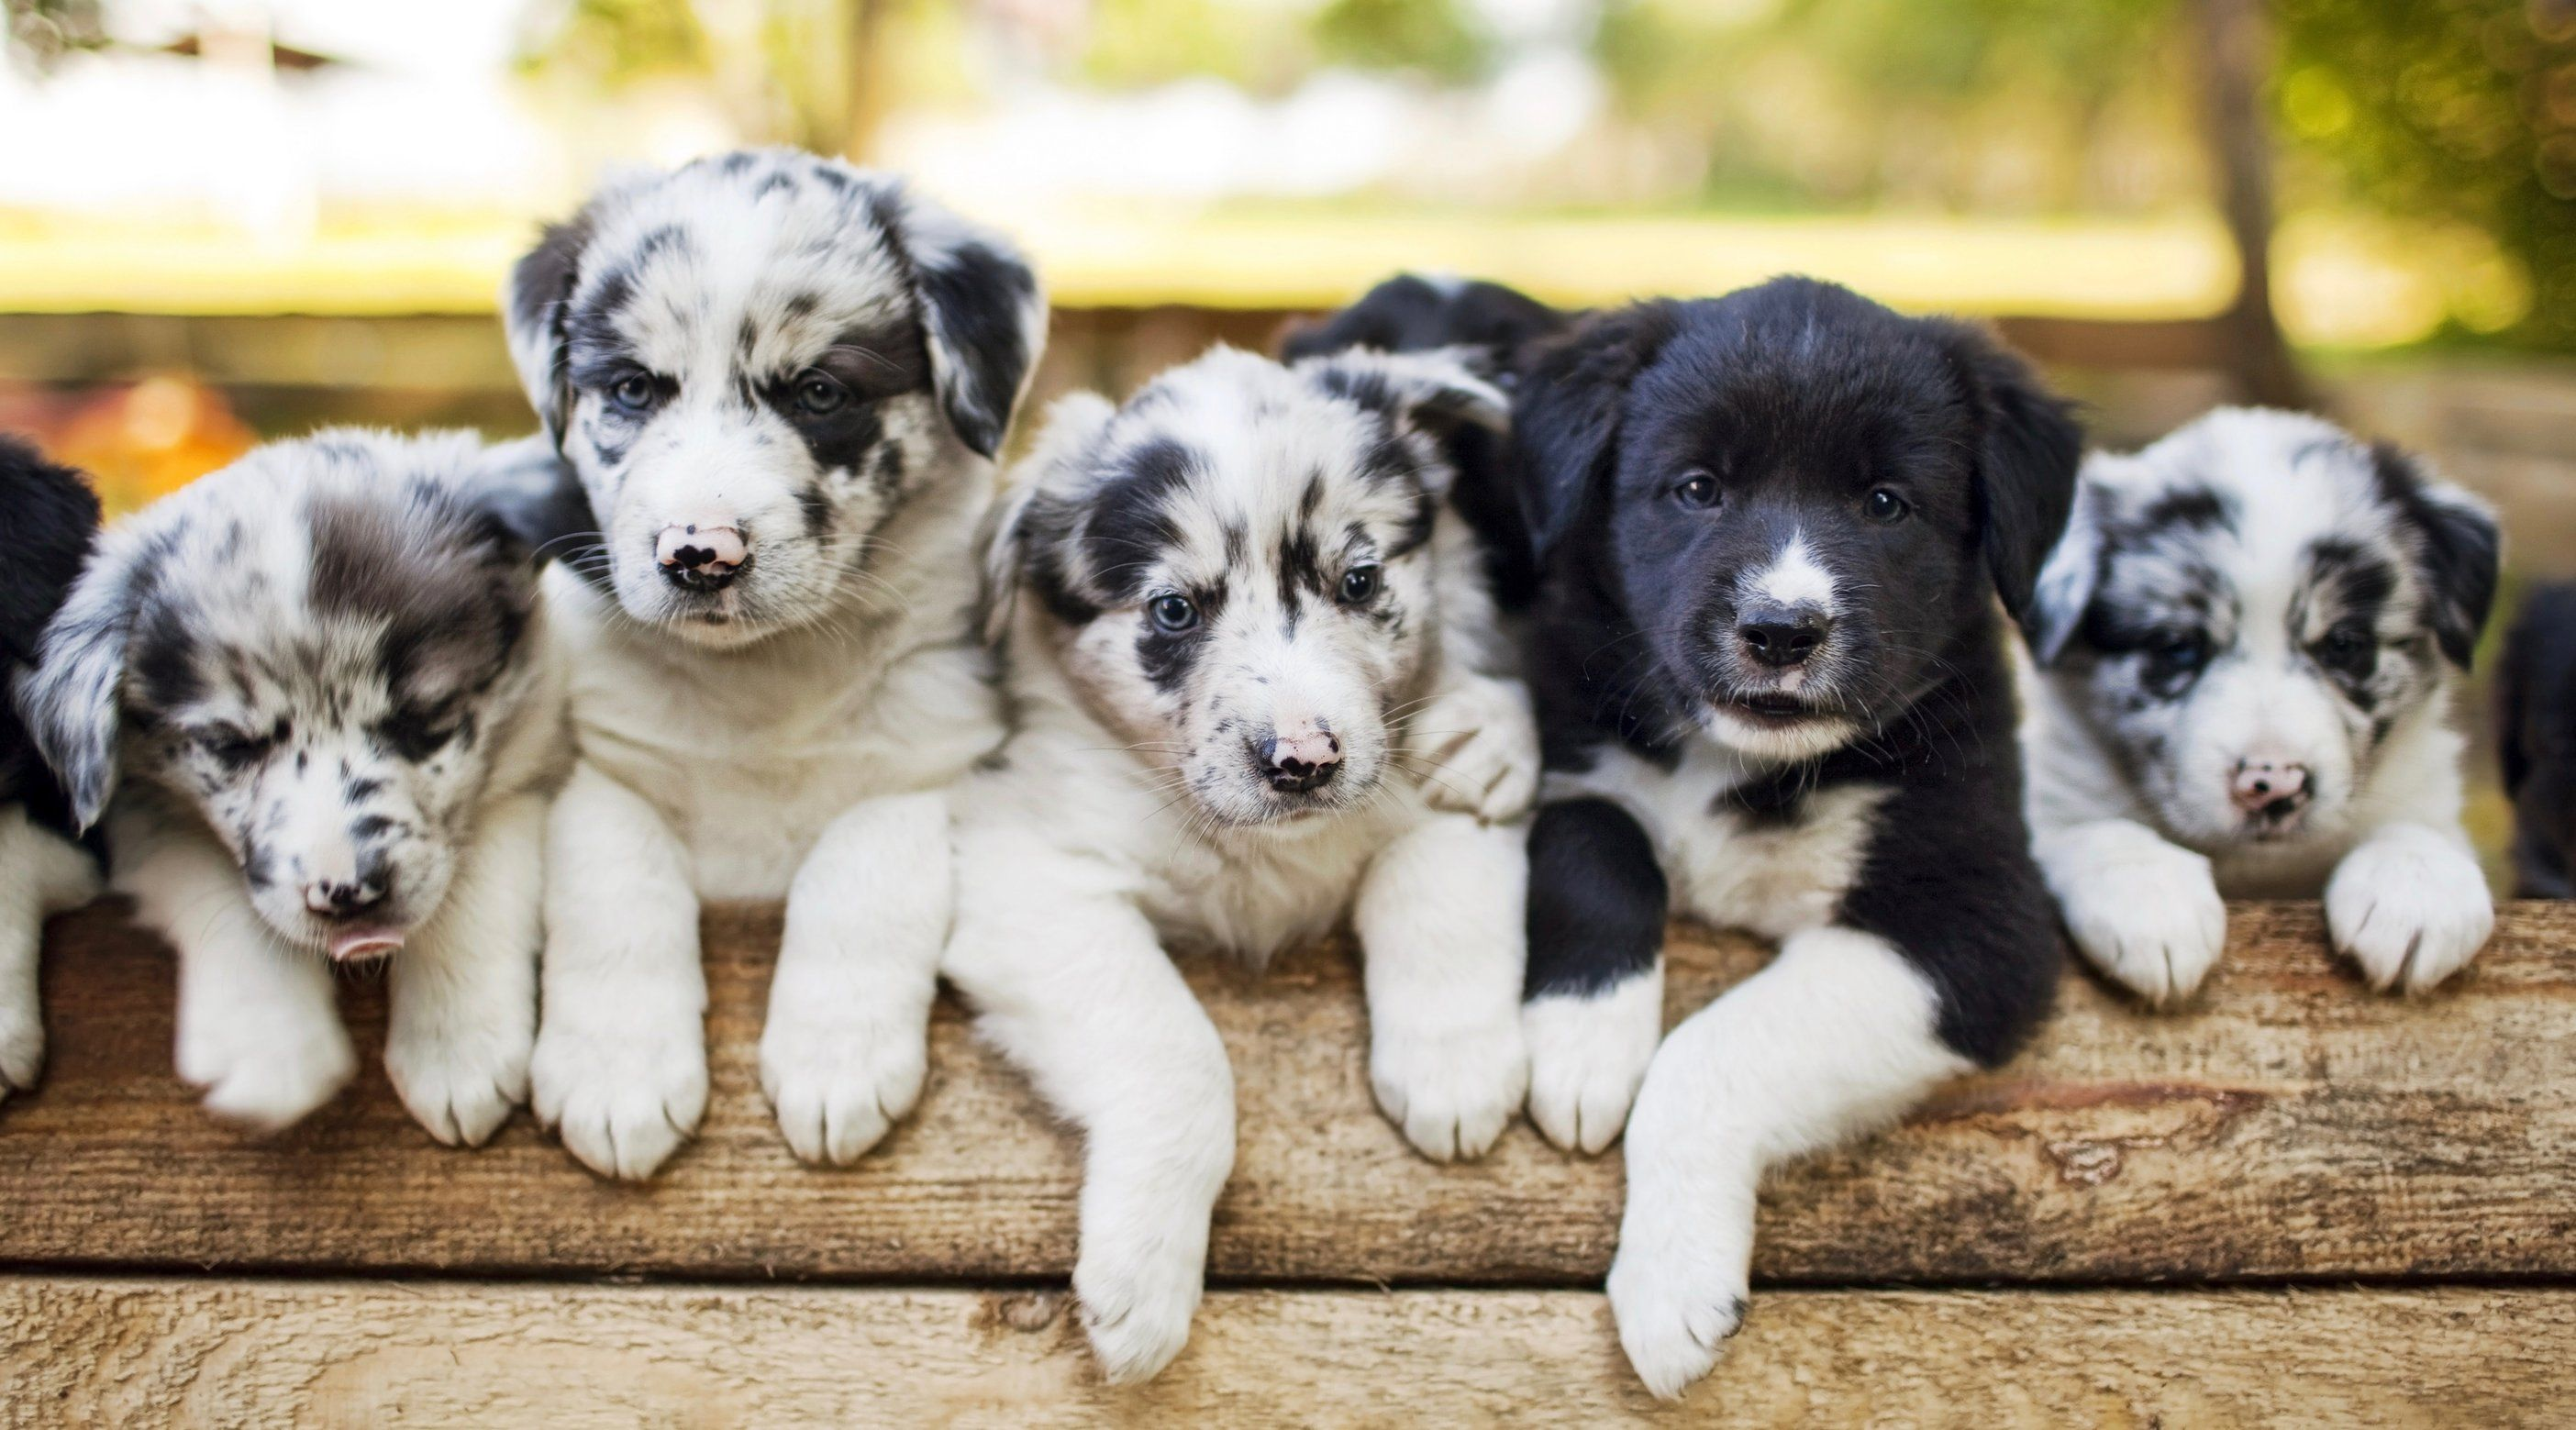 You can surprise your friends with a puppy delivery in Toronto next week